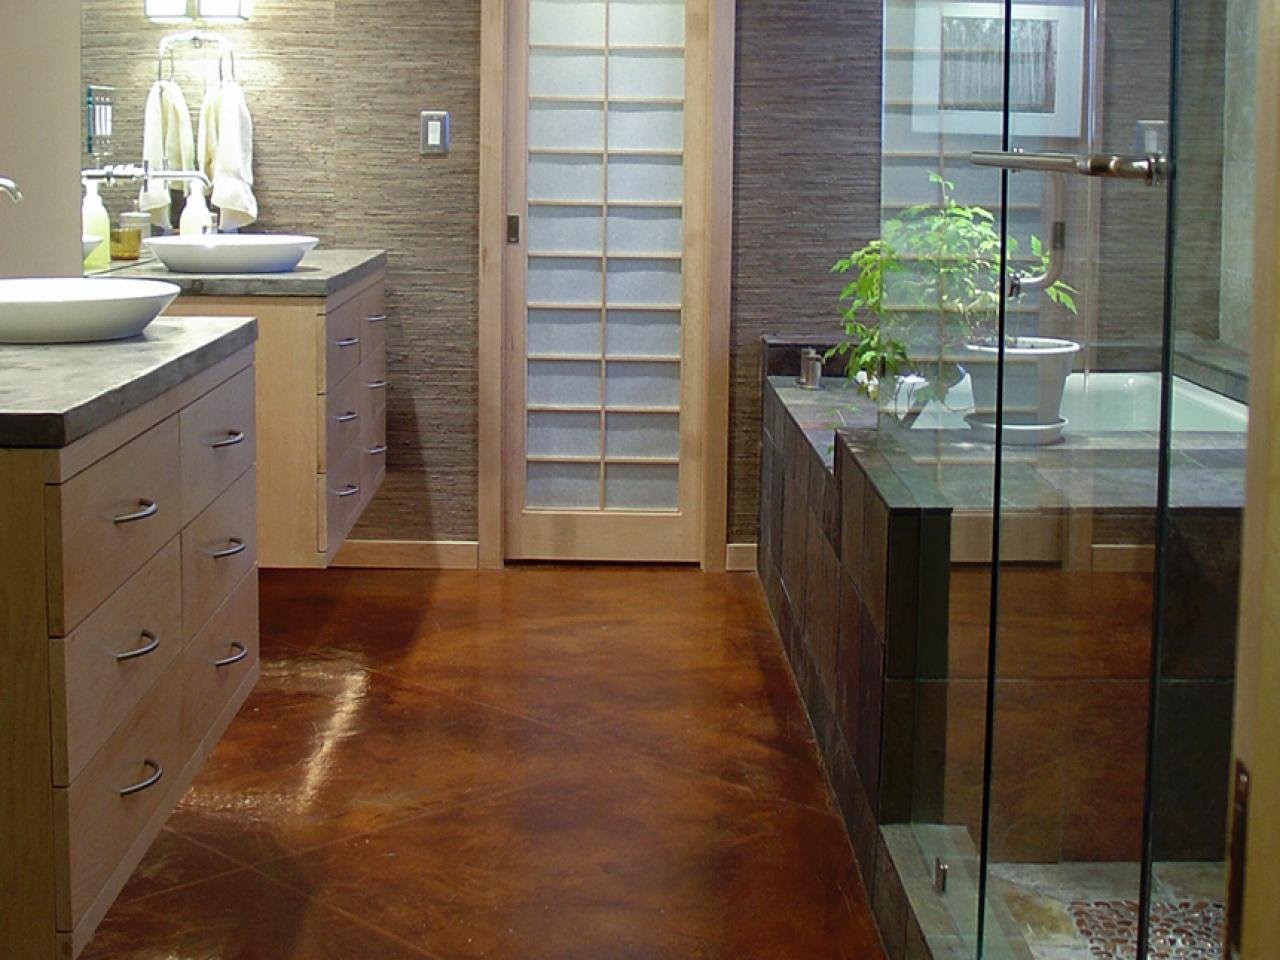 Bathroom Flooring Options  Interior Design Styles and Color Schemes for Home Decorating  HGTV